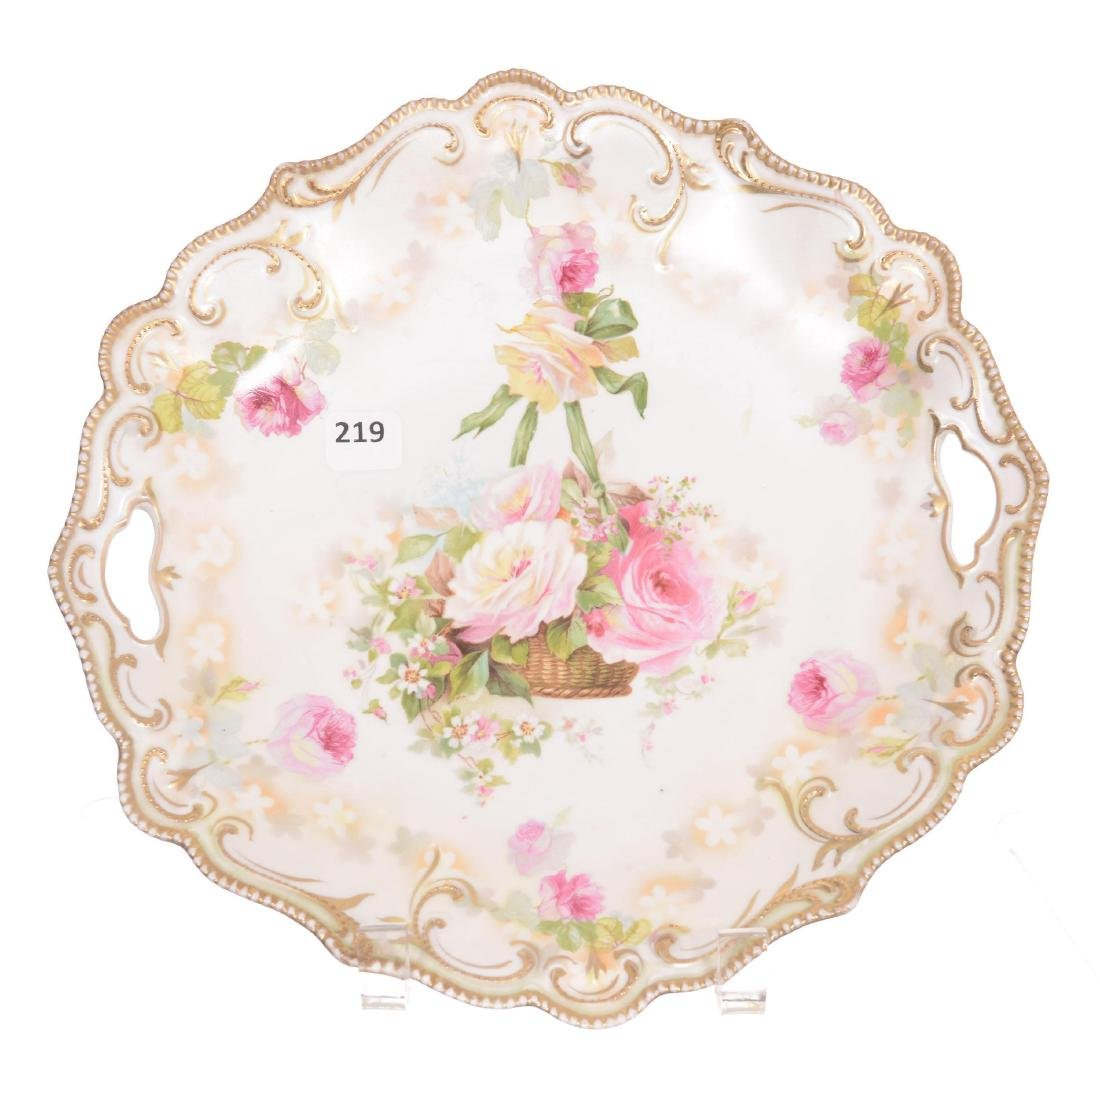 RSP Two-Handled Cake Plate